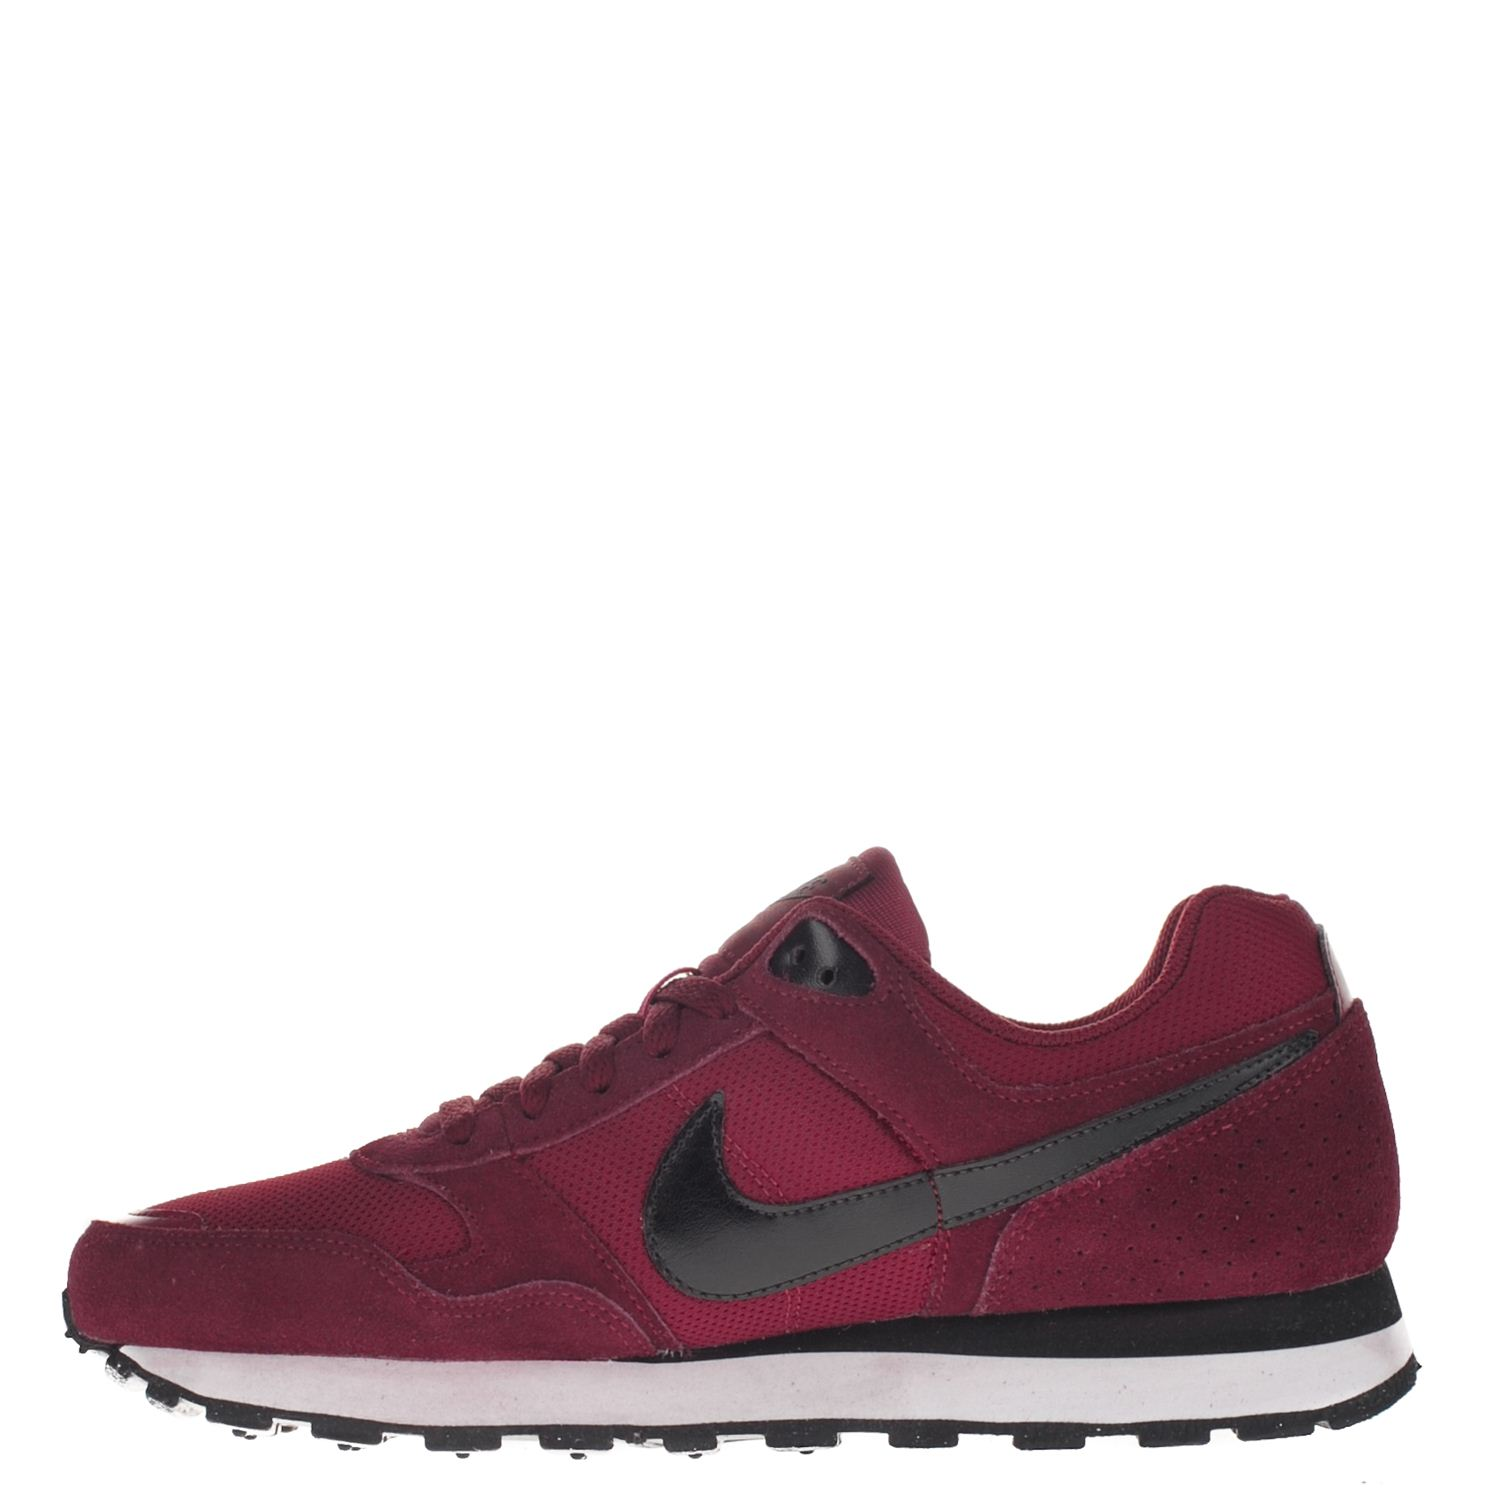 check out 746fc f3993 Nike MD Runner 6 heren lage sneakers